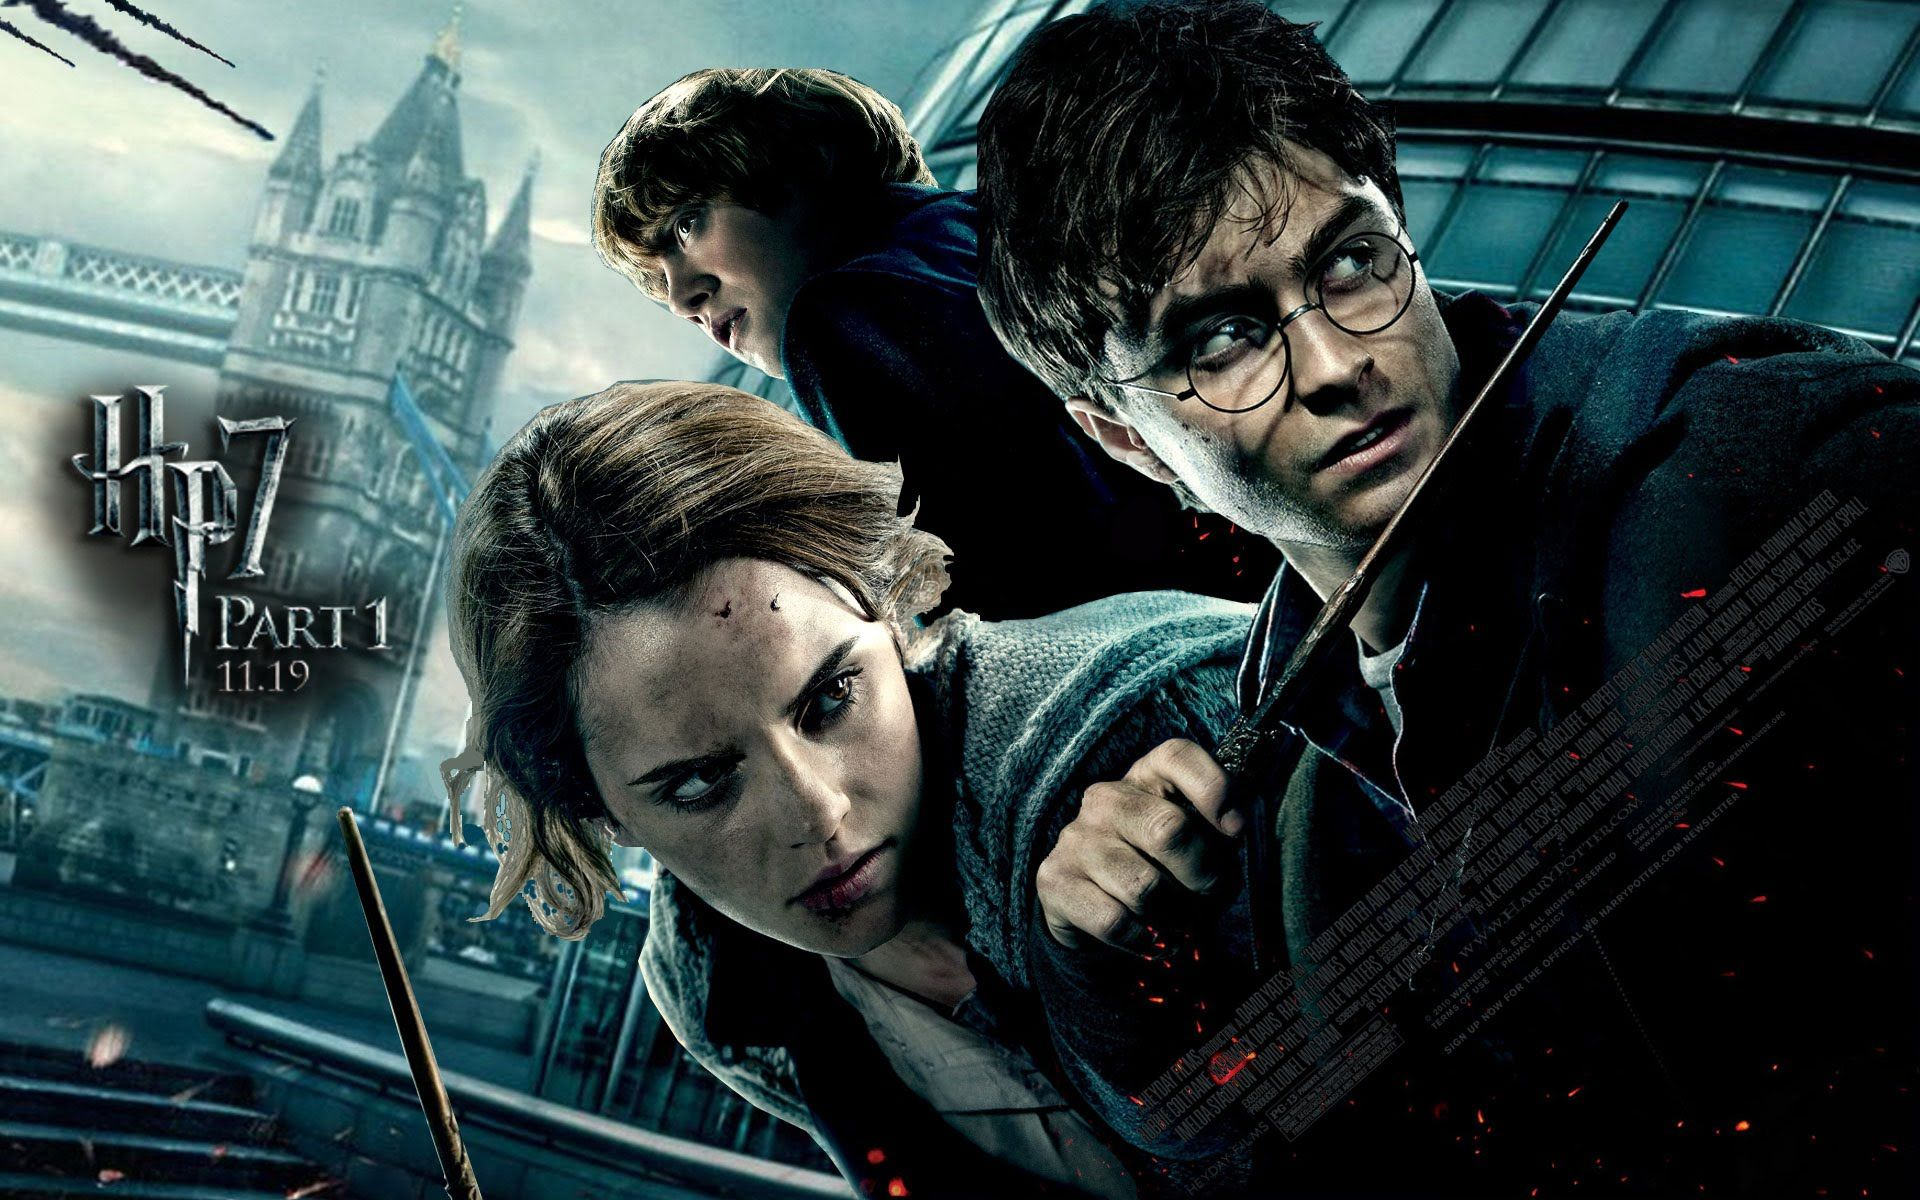 Harry Potter 7 Wallpapers Top Free Harry Potter 7